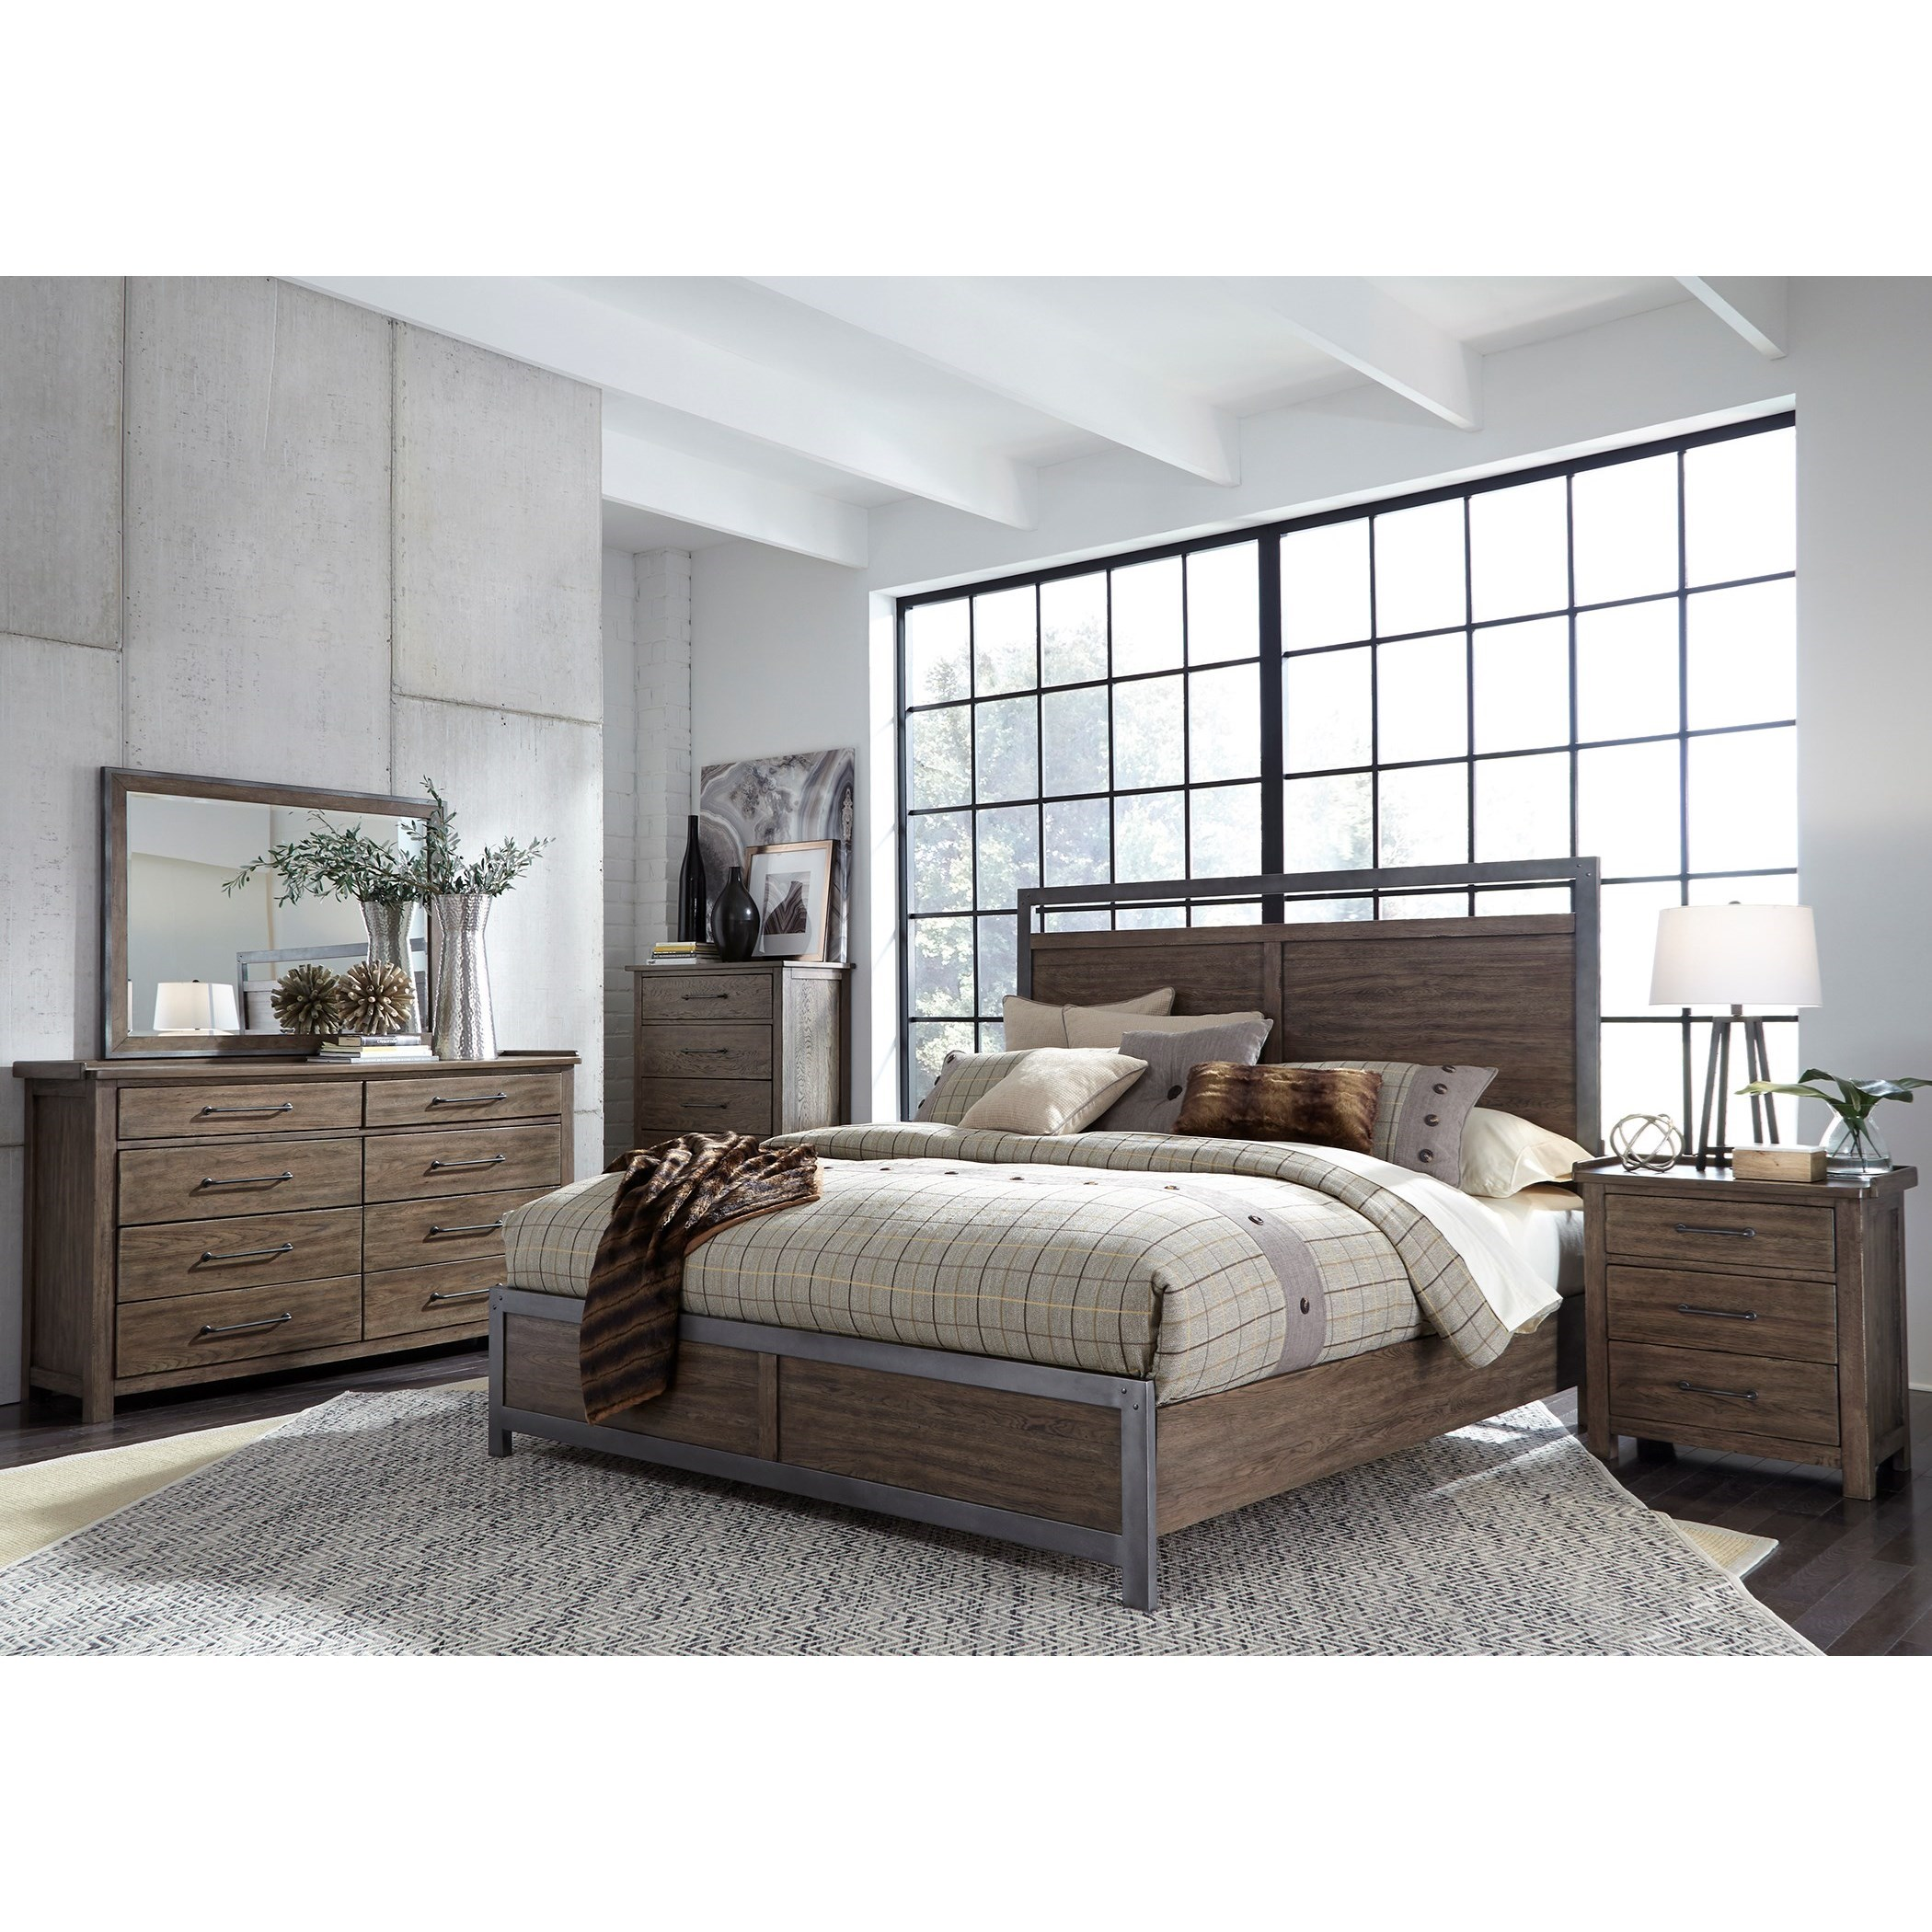 Liberty Furniture Sonoma Road Queen Bedroom Group Royal